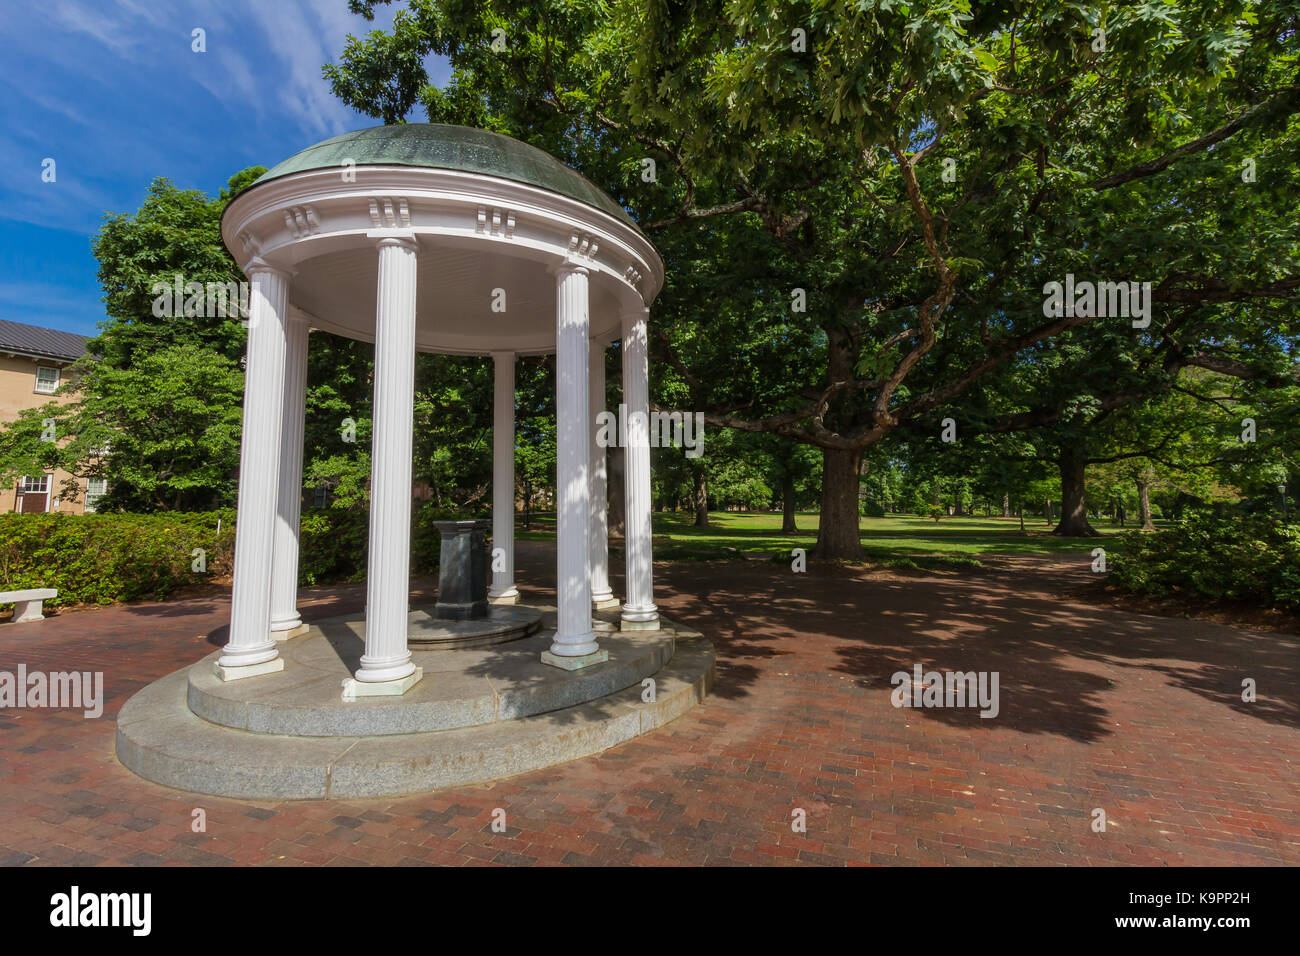 Old Well at the University of North Carolina at Chapel Hill in Chapel Hill, North Carolina.  Built in 1897. - Stock Image